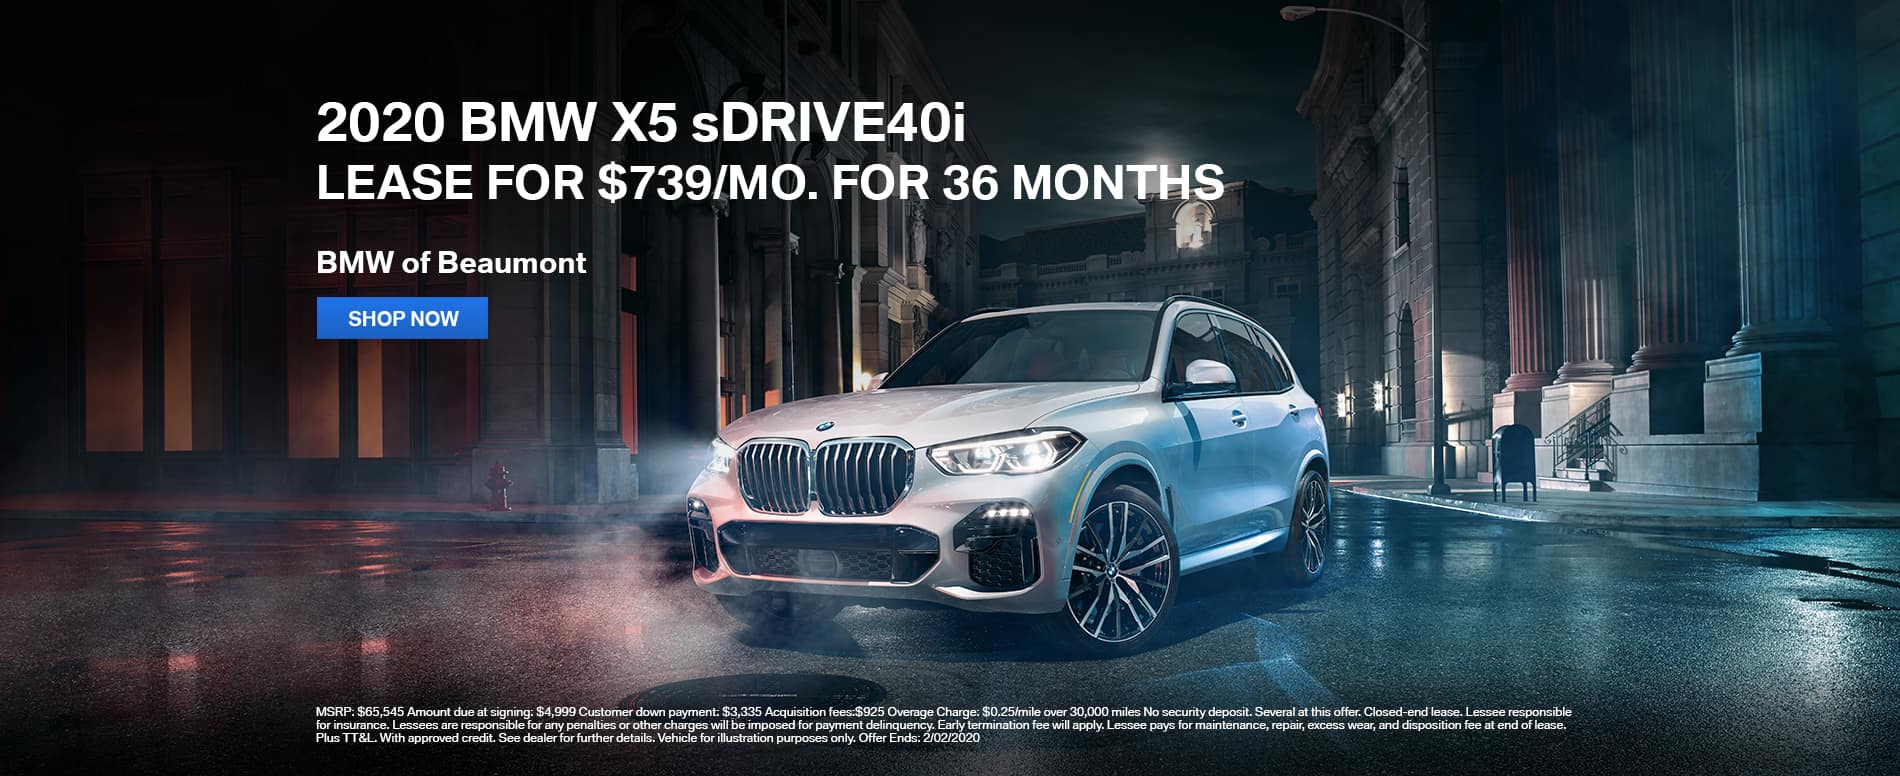 2020 BMW X5 sDrive40i lease Beaumont